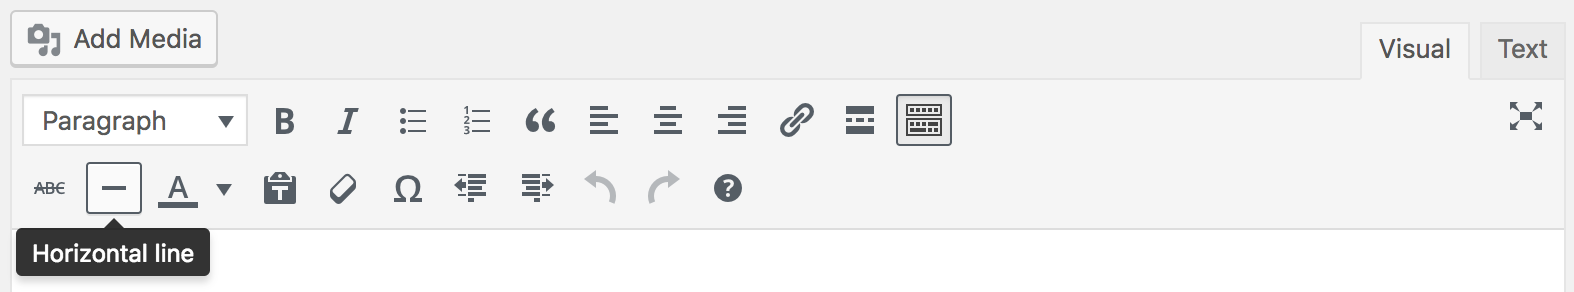 Horizontal Line button